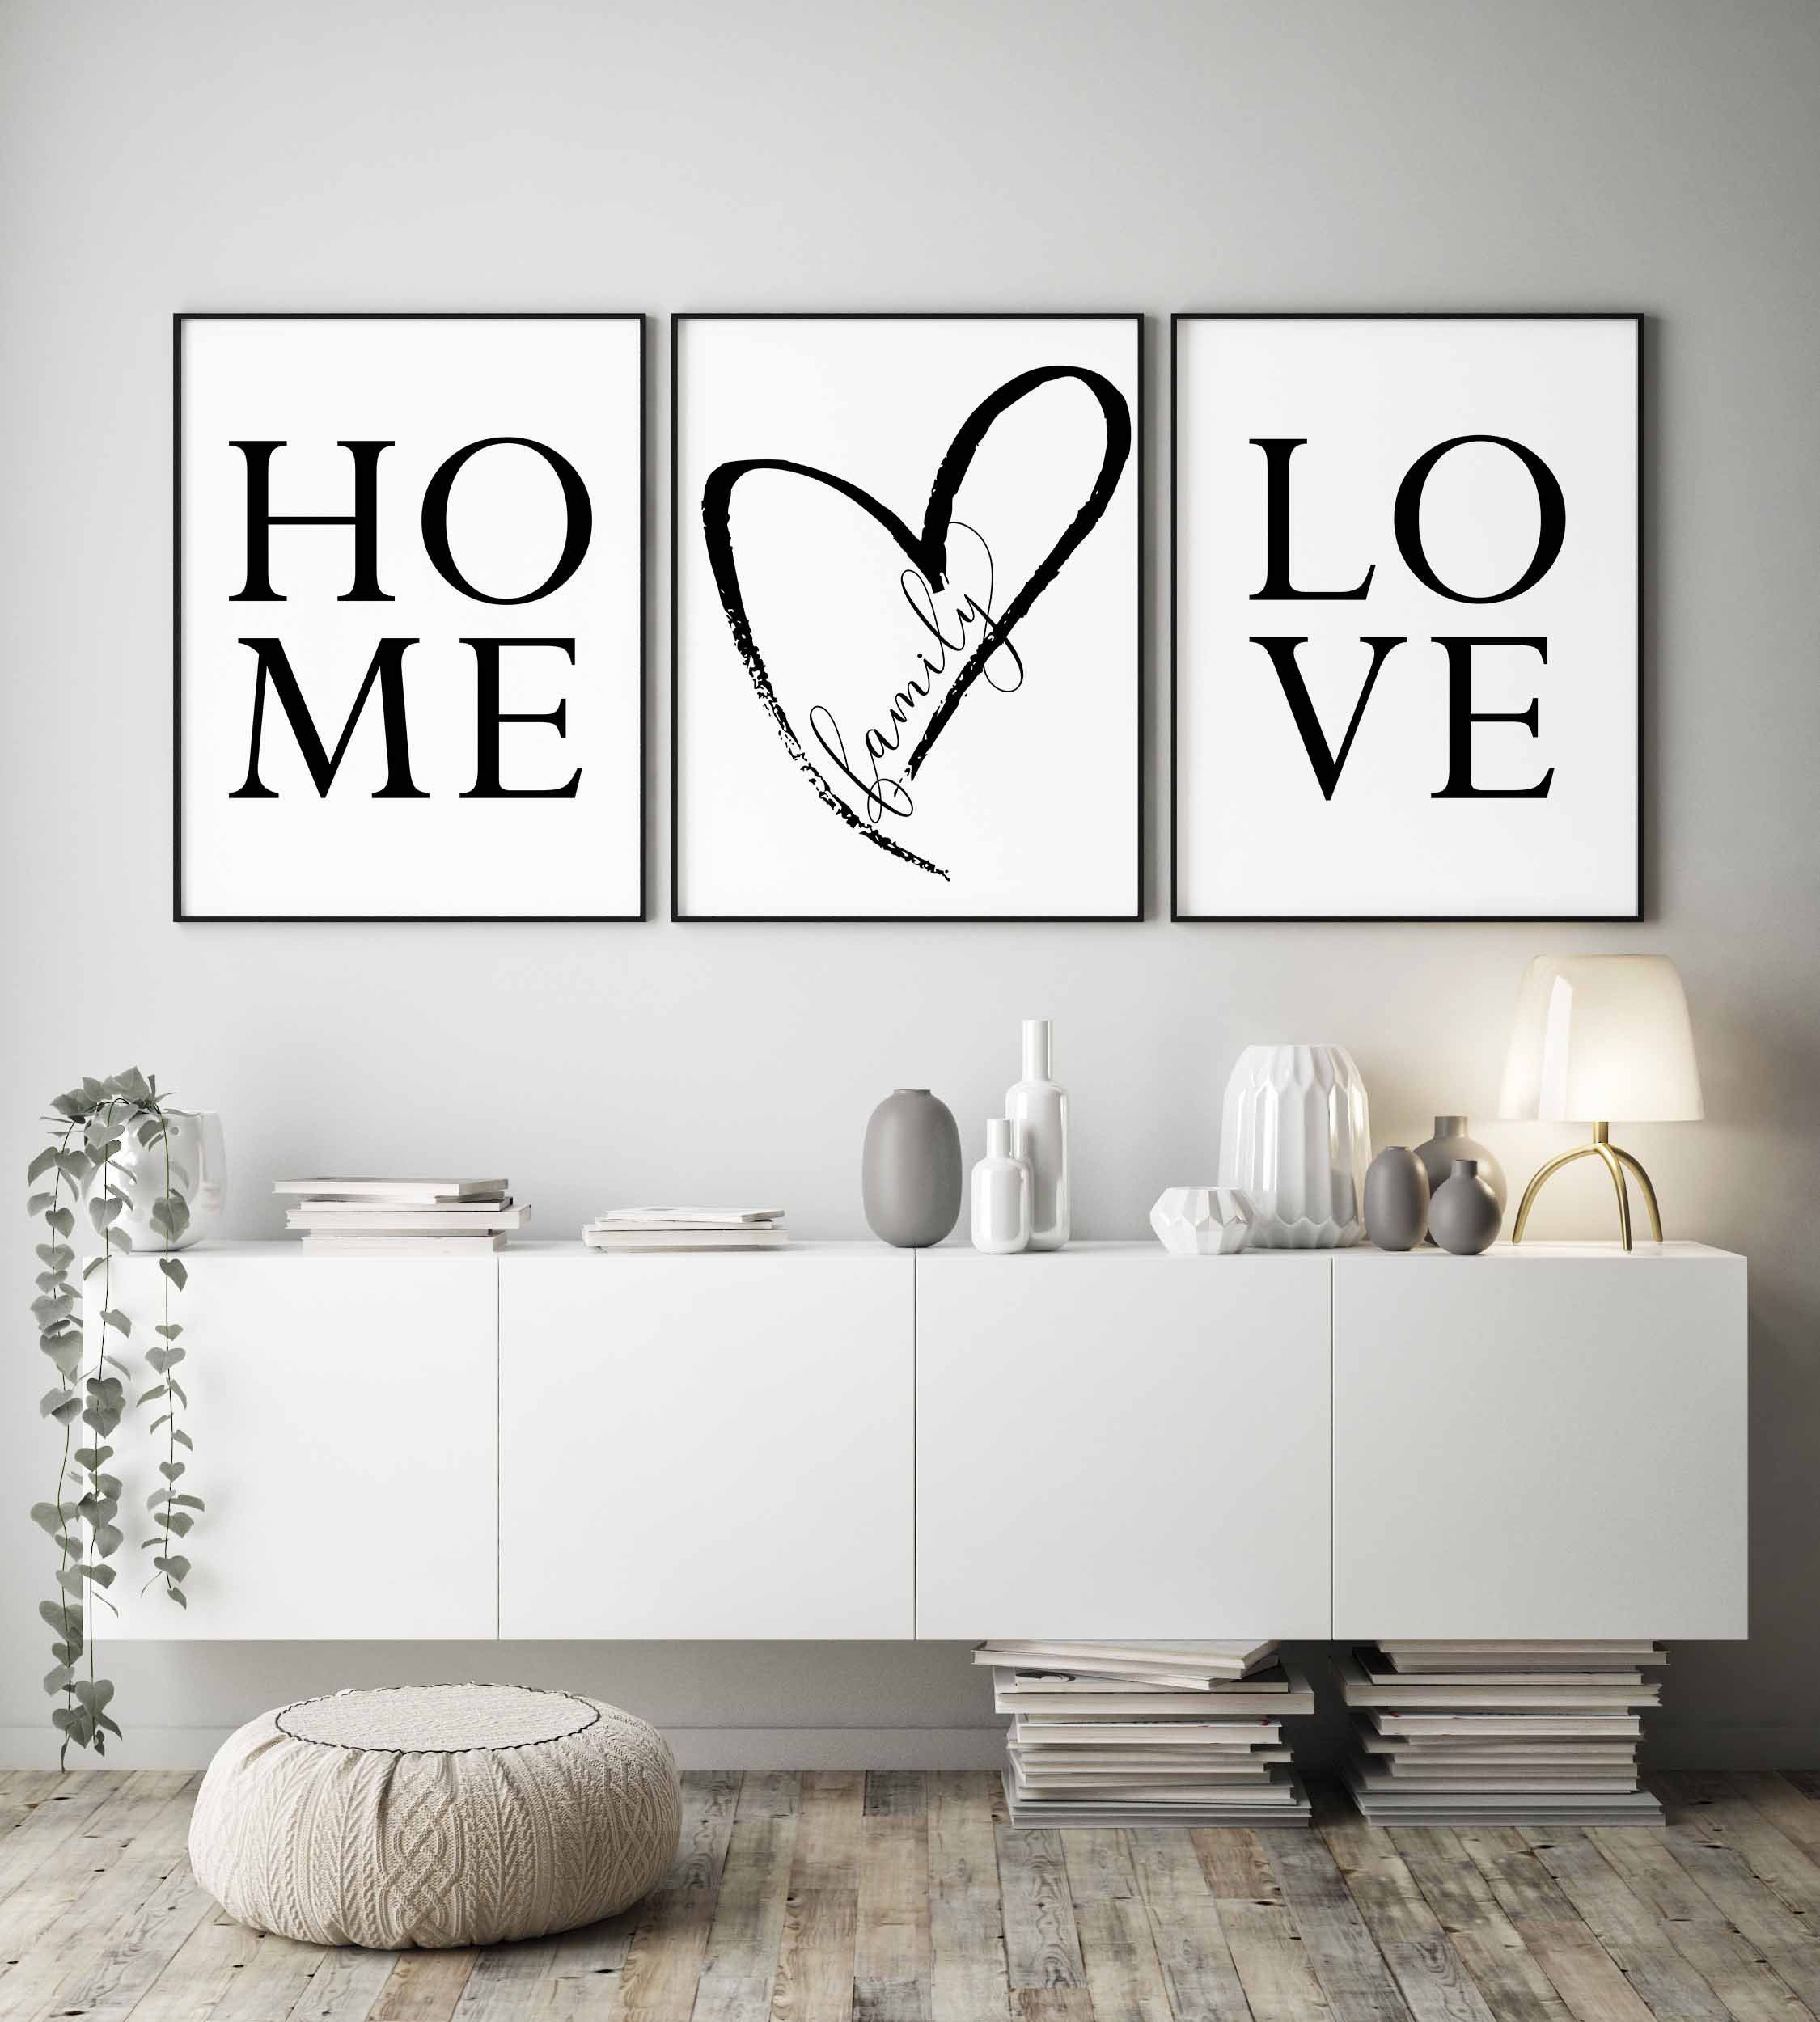 Family Sign Home Sign Wall Art Home Decor Set Of 3 Prints Family Quotes Living Room Decor Dining Room Wall Art Family Quotes Love Wall Art In 2020 Family Room Walls Dining Room Walls Dining Room Wall Decor #wallpaper #decor #for #living #room